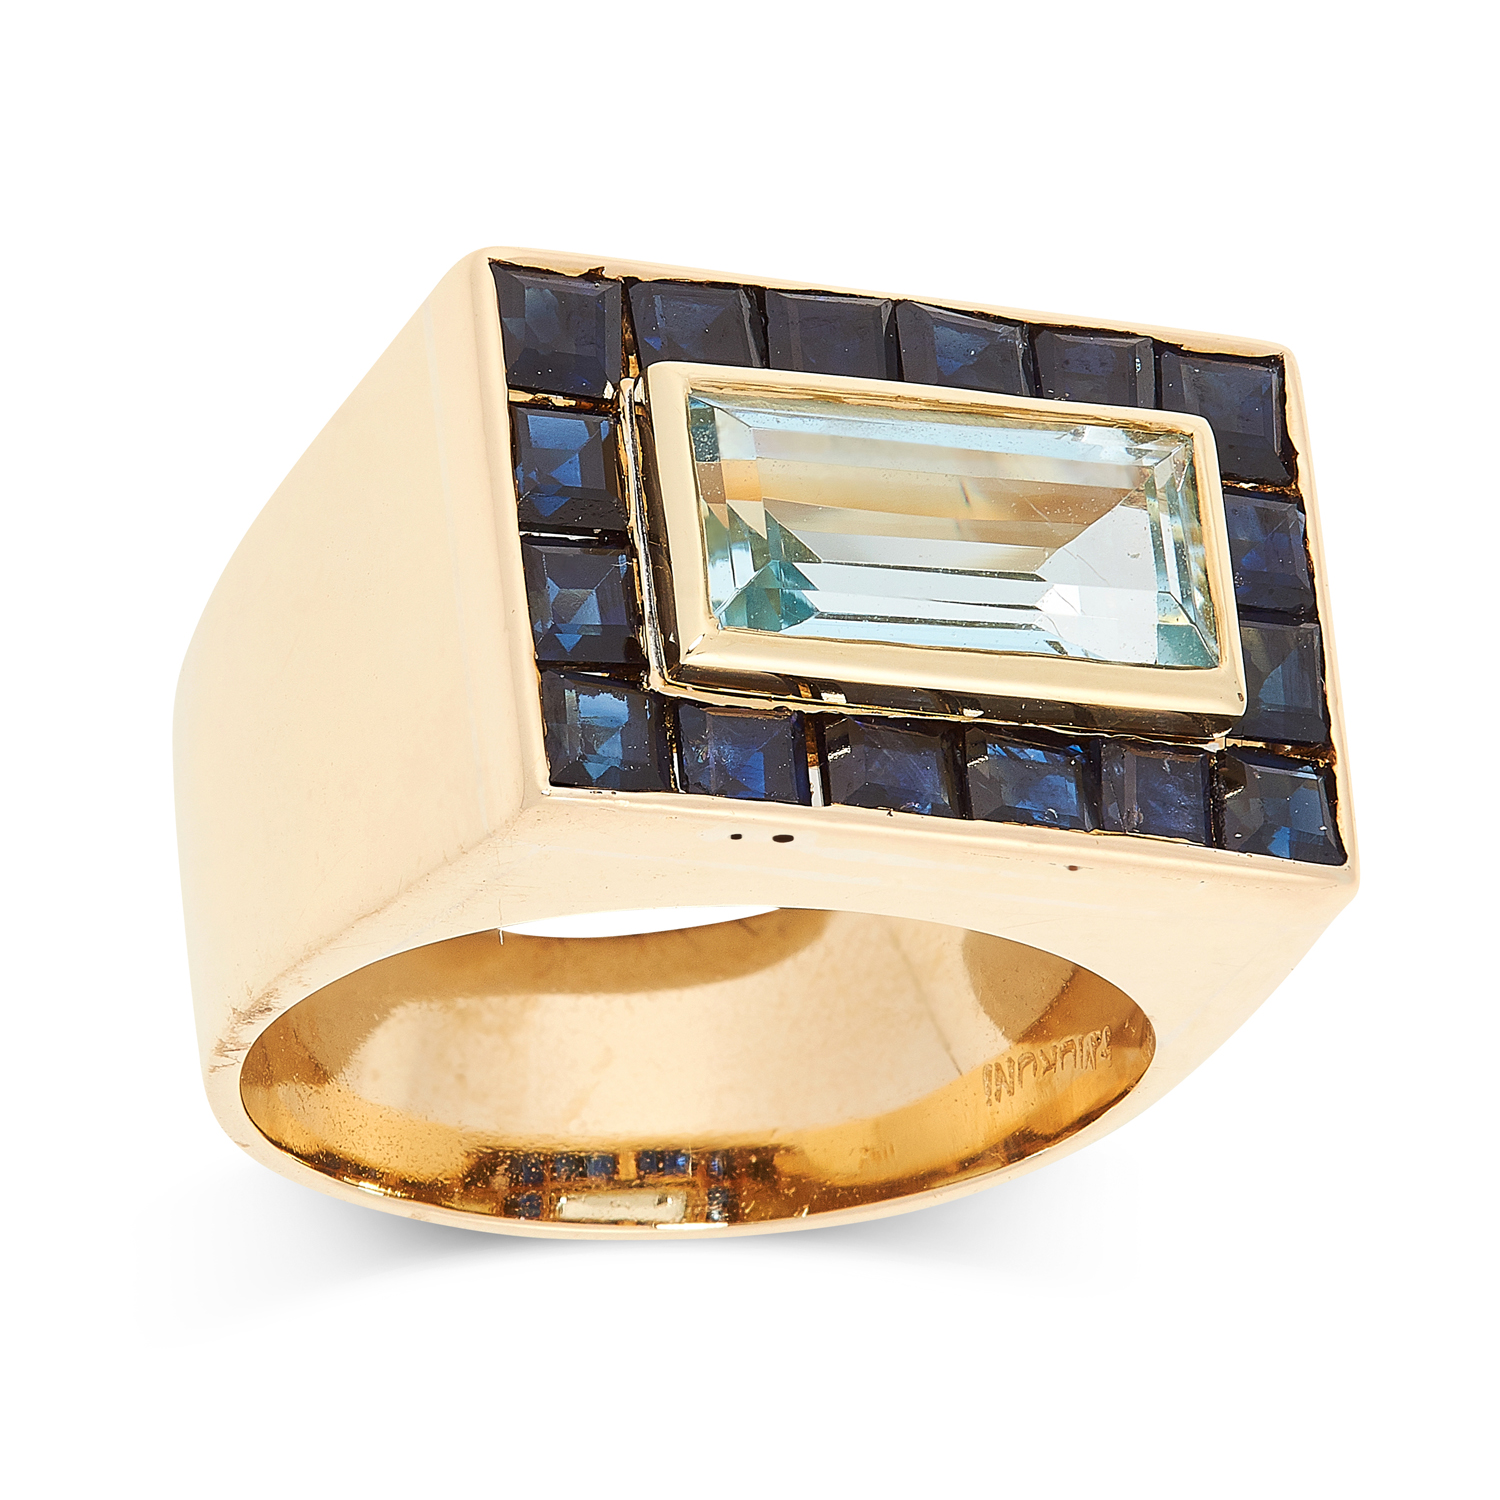 A SAPPHIRE AND BLUE TOPAZ DRESS RING, MURUNI set with a central step cut blue topaz in a border of - Image 2 of 2